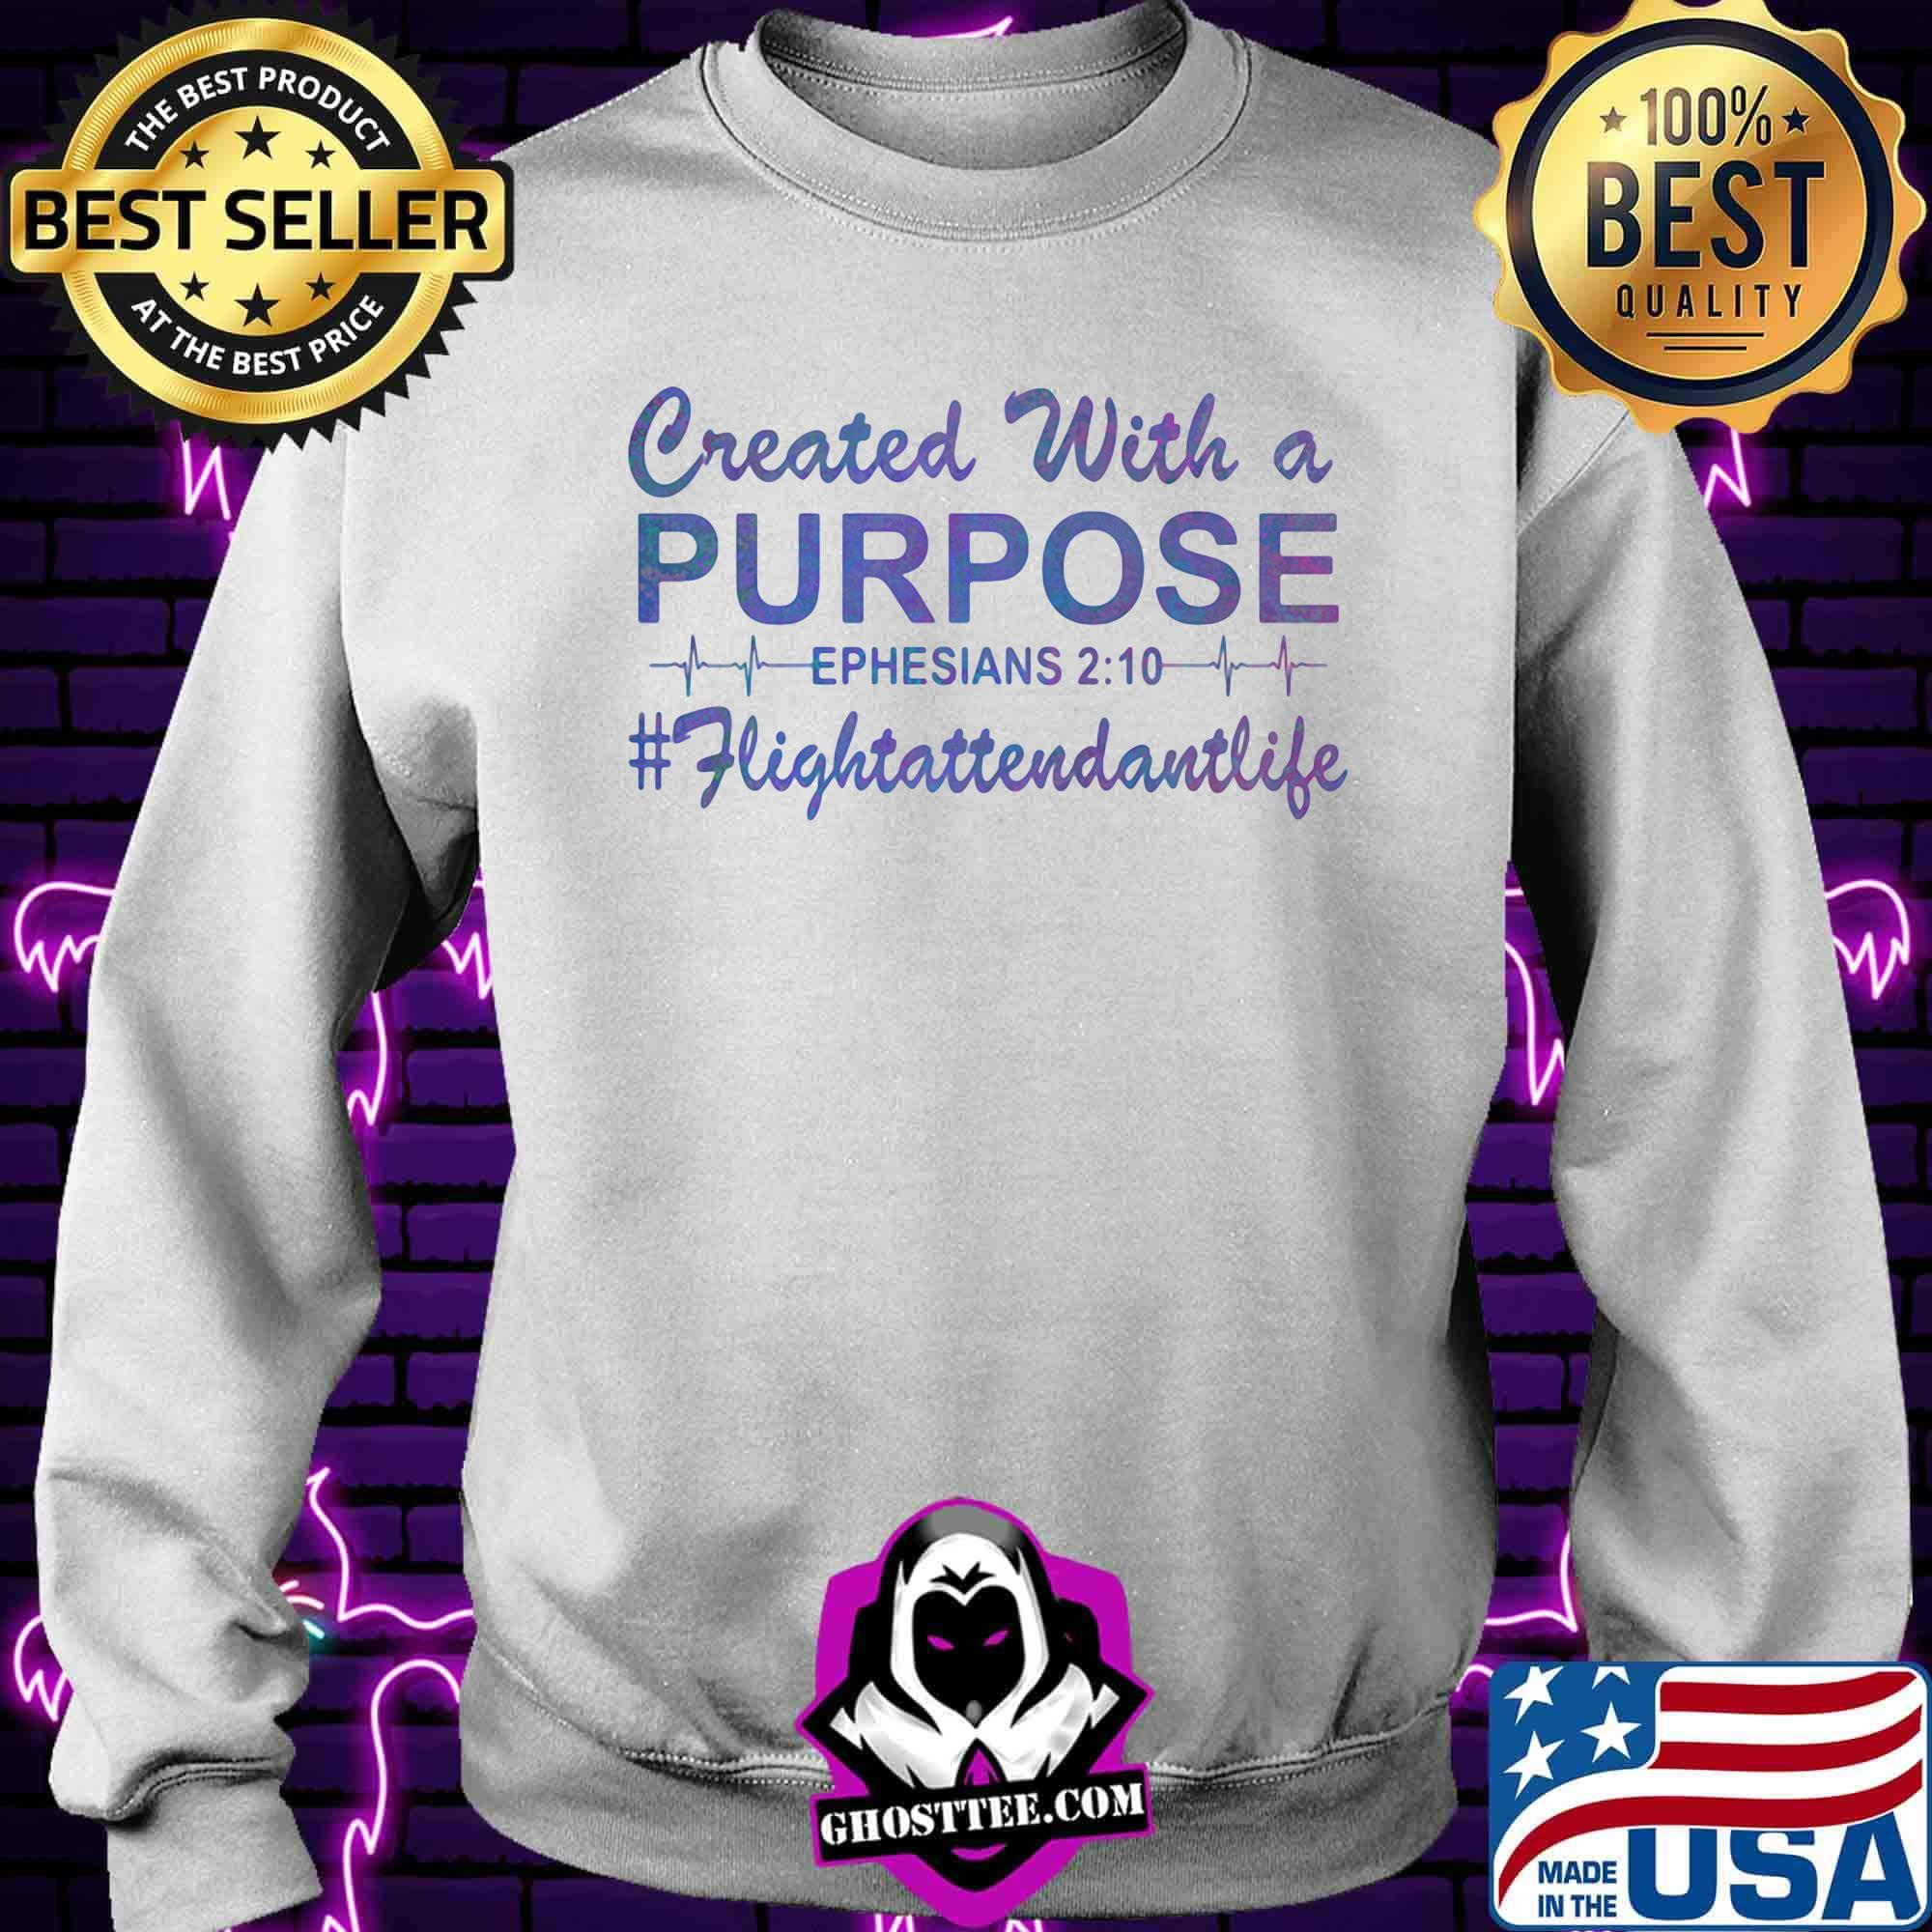 e805df26 created with a purpose ephesians fligtattendantllife shirt sweater - Home